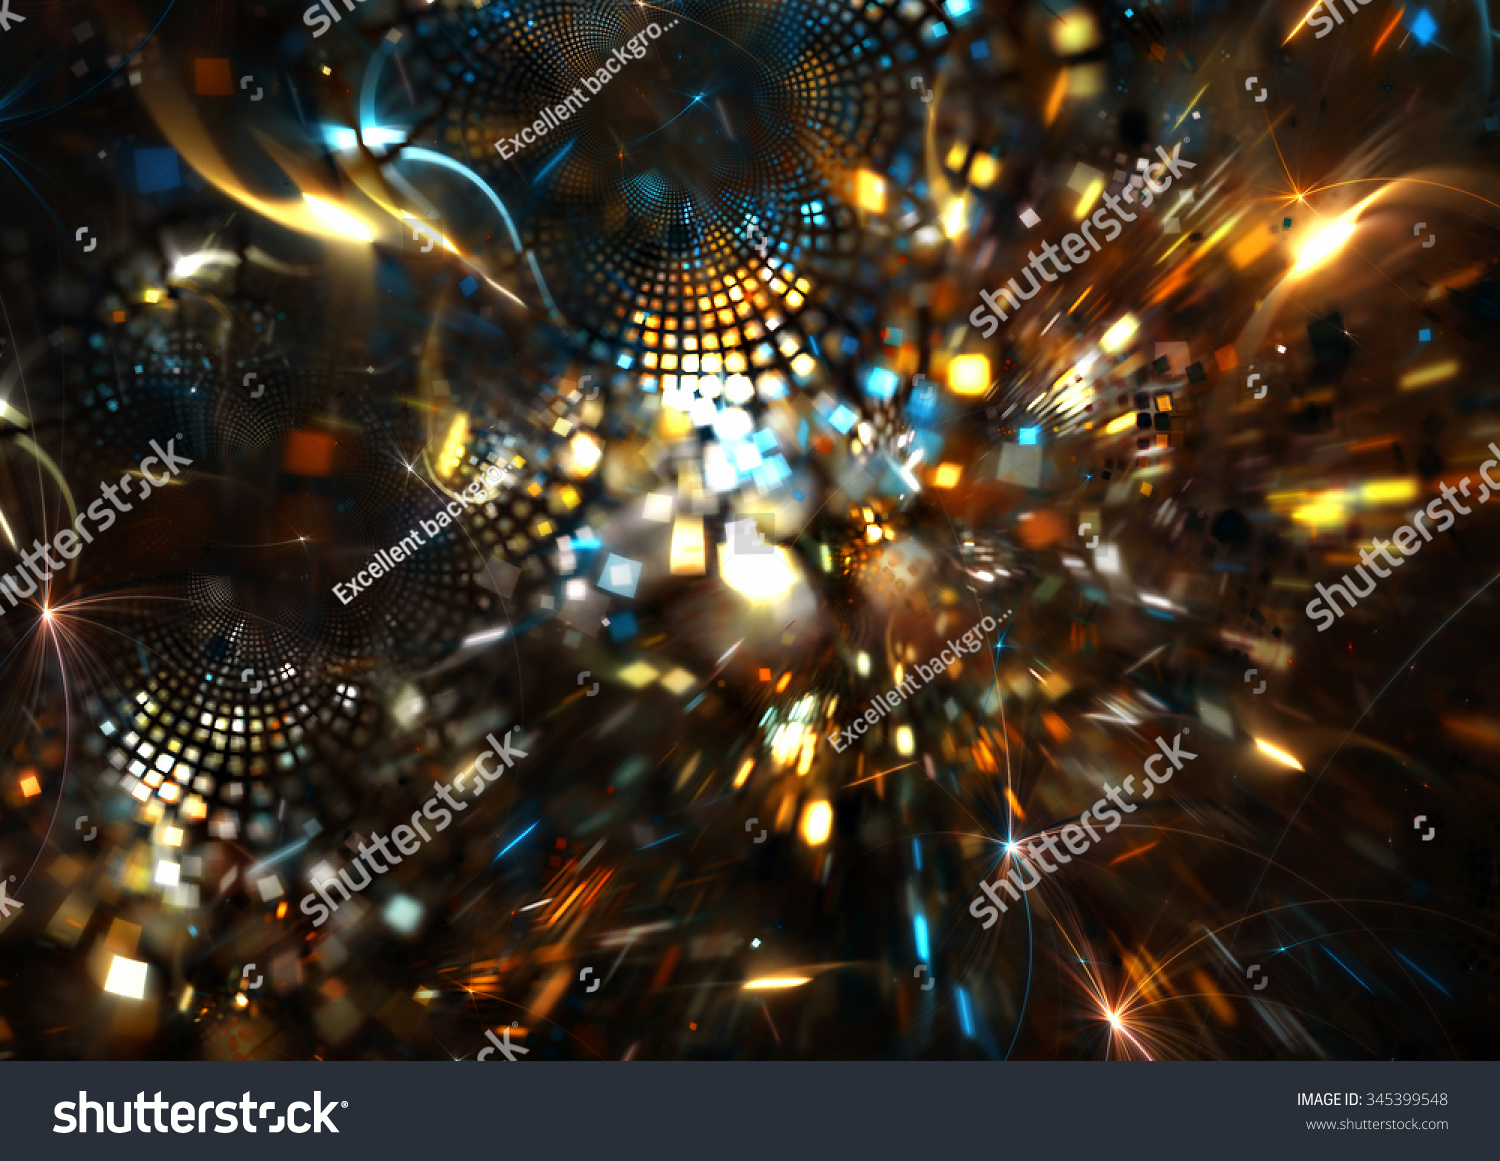 fireworks on holiday party abstract bright background save to a lightbox